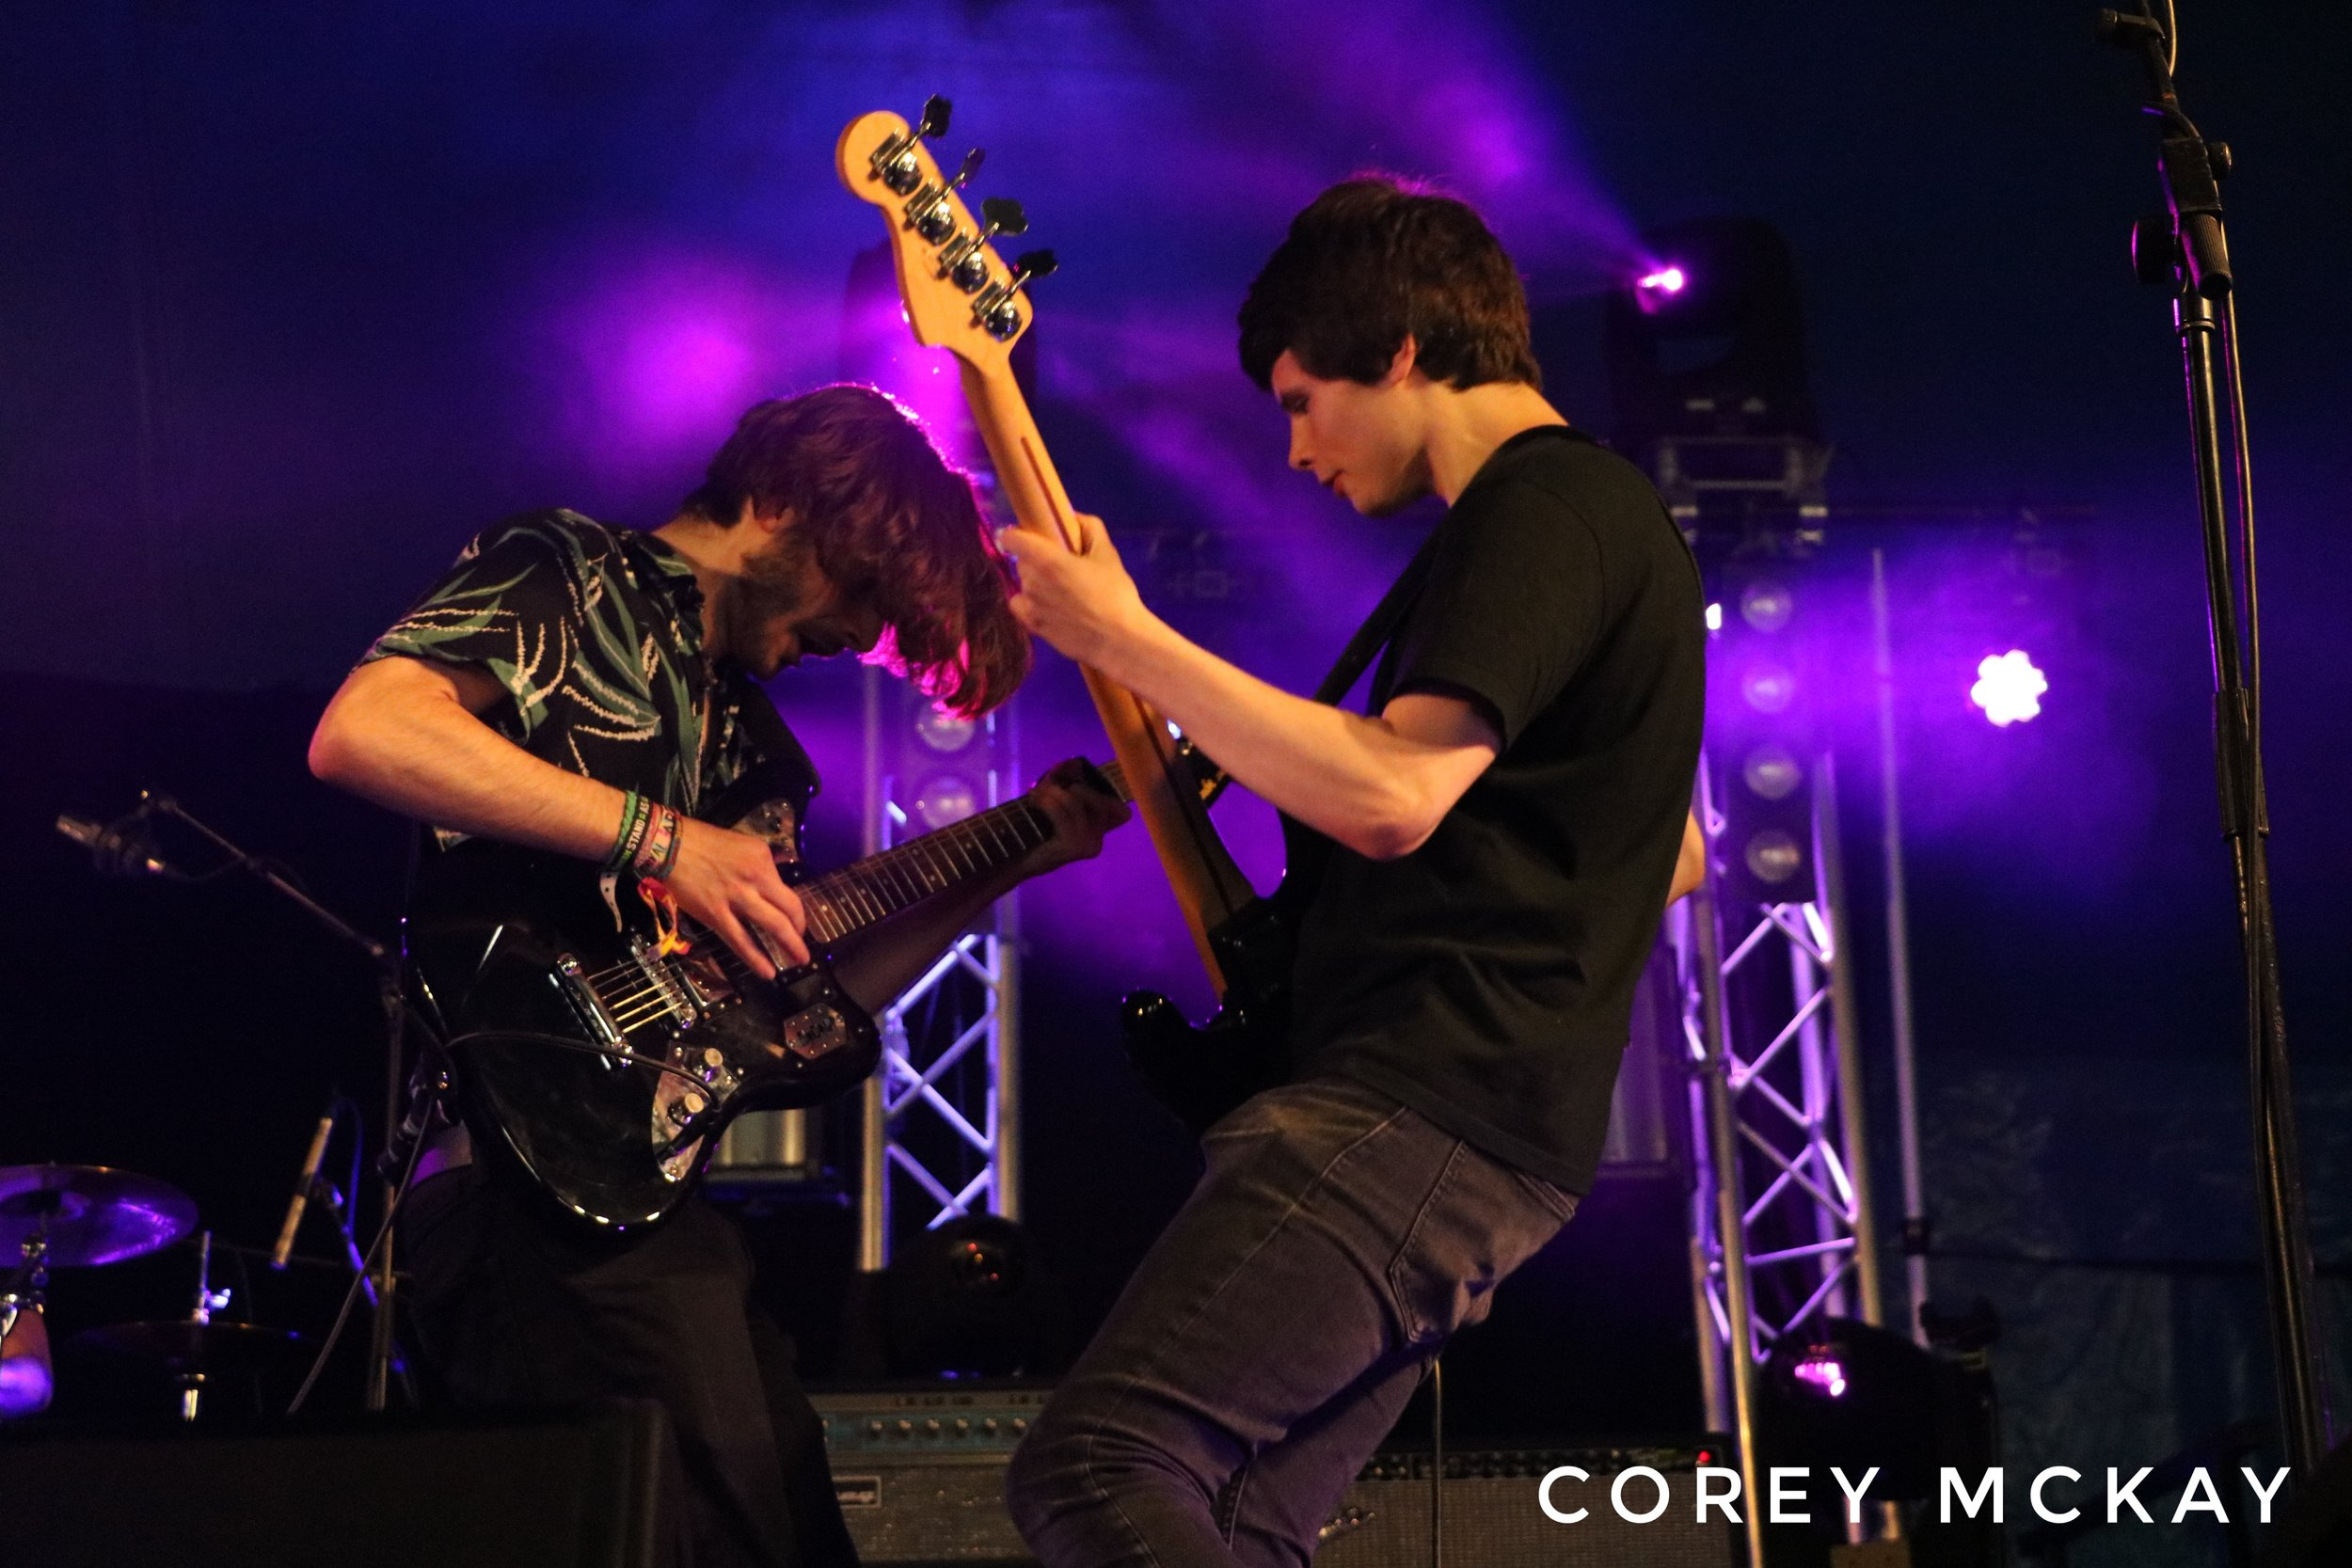 THE CLIFTONS PERFORMING AT CARNIVAL FIXTY SIX FESTIVAL 2017 - 12/08/2017  PICTURE BY: COREY MCKAY PHOTOGRAPHY